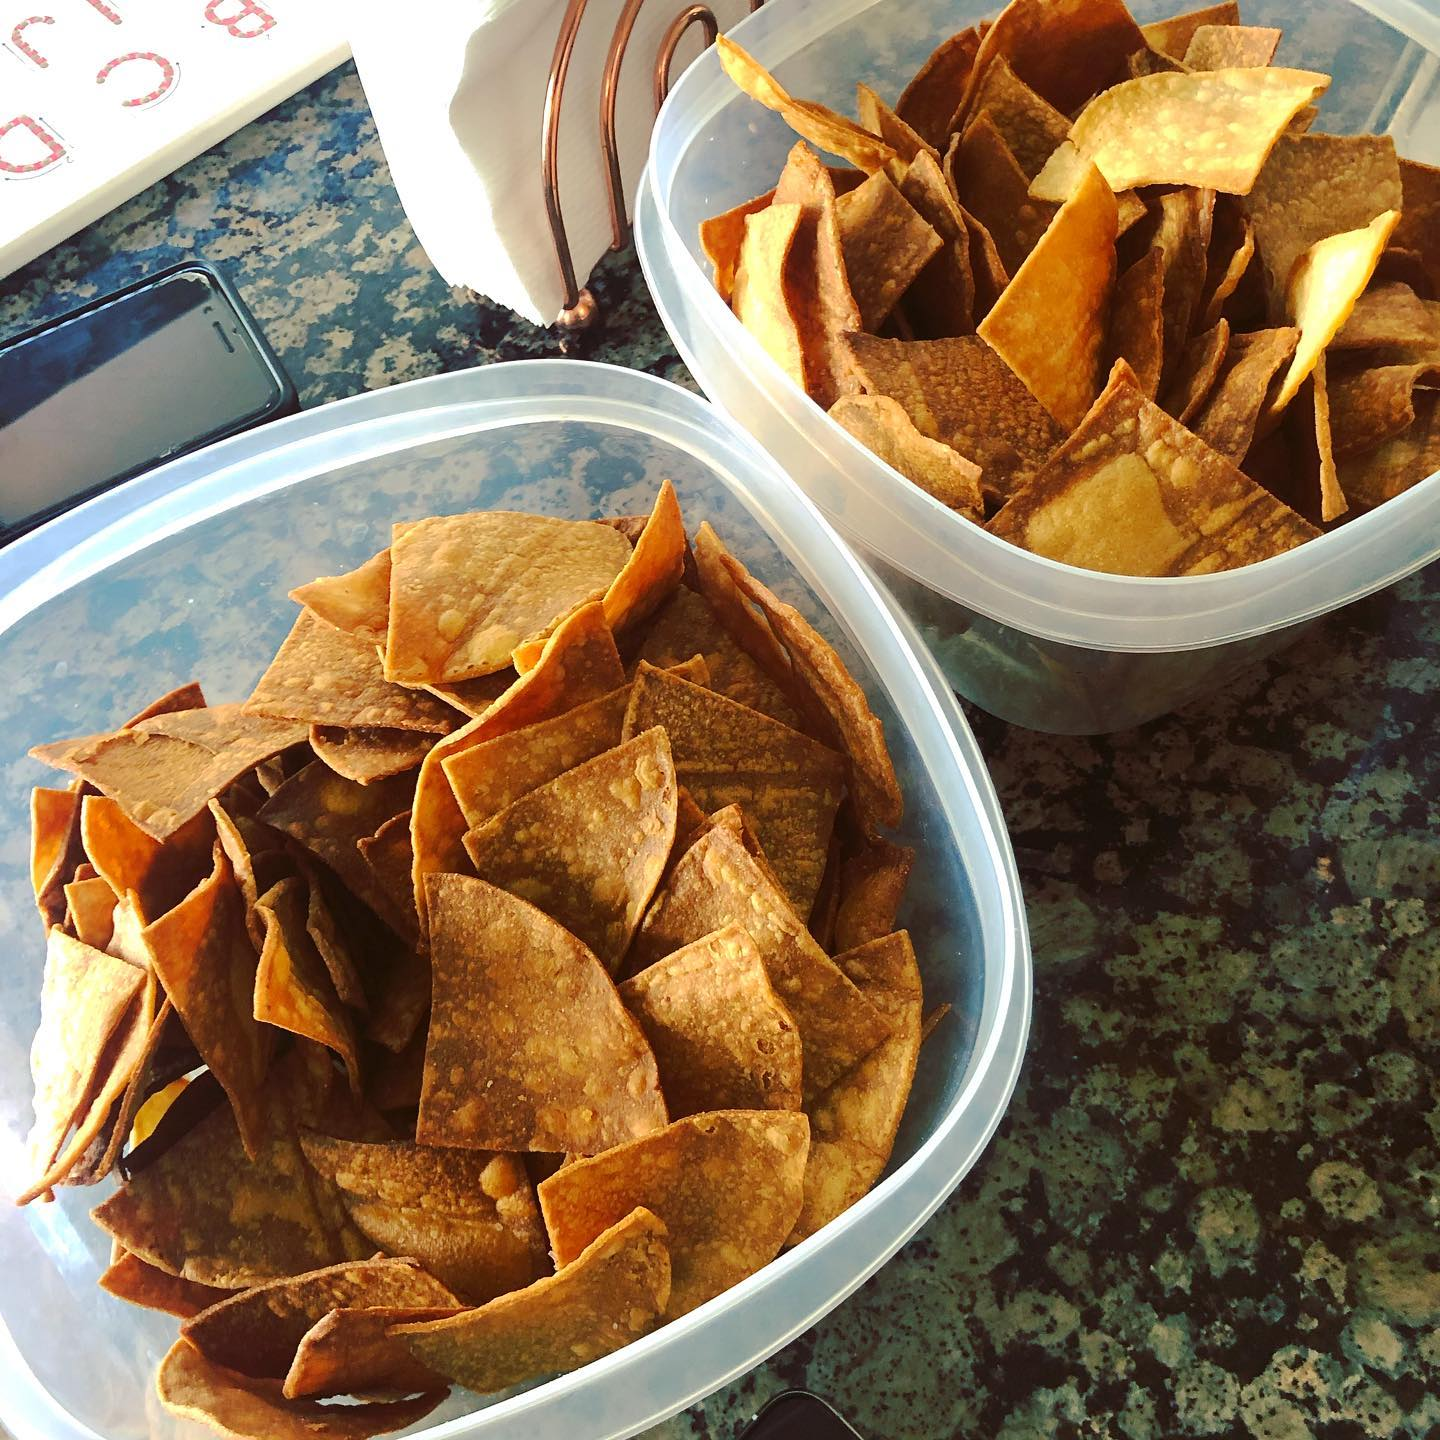 When you buy too many tortillas at Pricesmart (Costco) and have to turn them into tortilla chips, how sad.